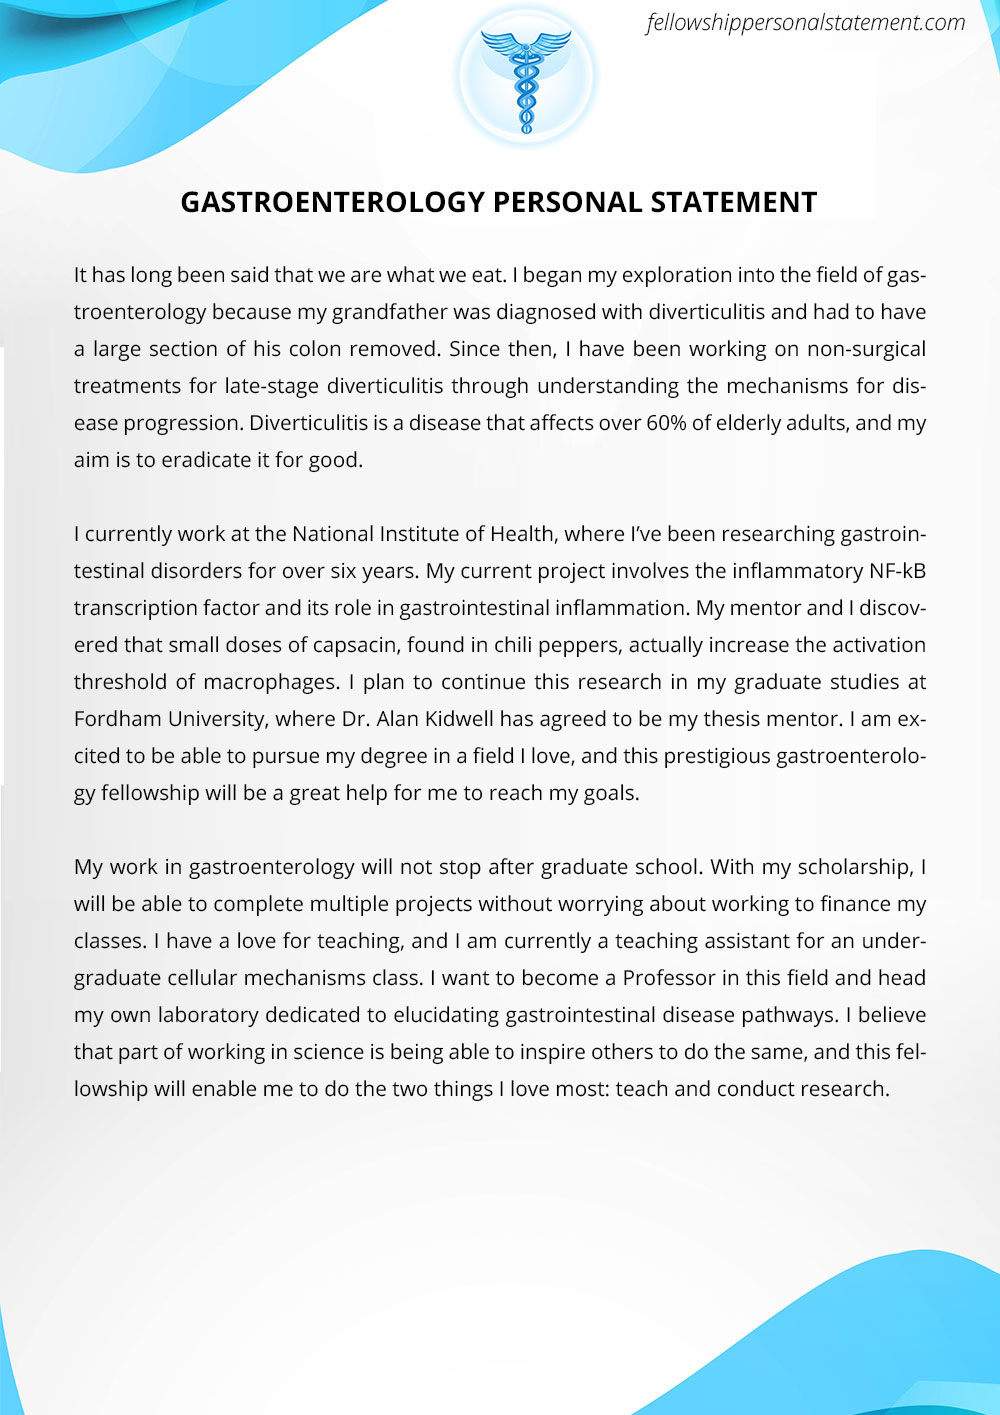 Powerful And Unique Personal Statement For Fellowship Sample